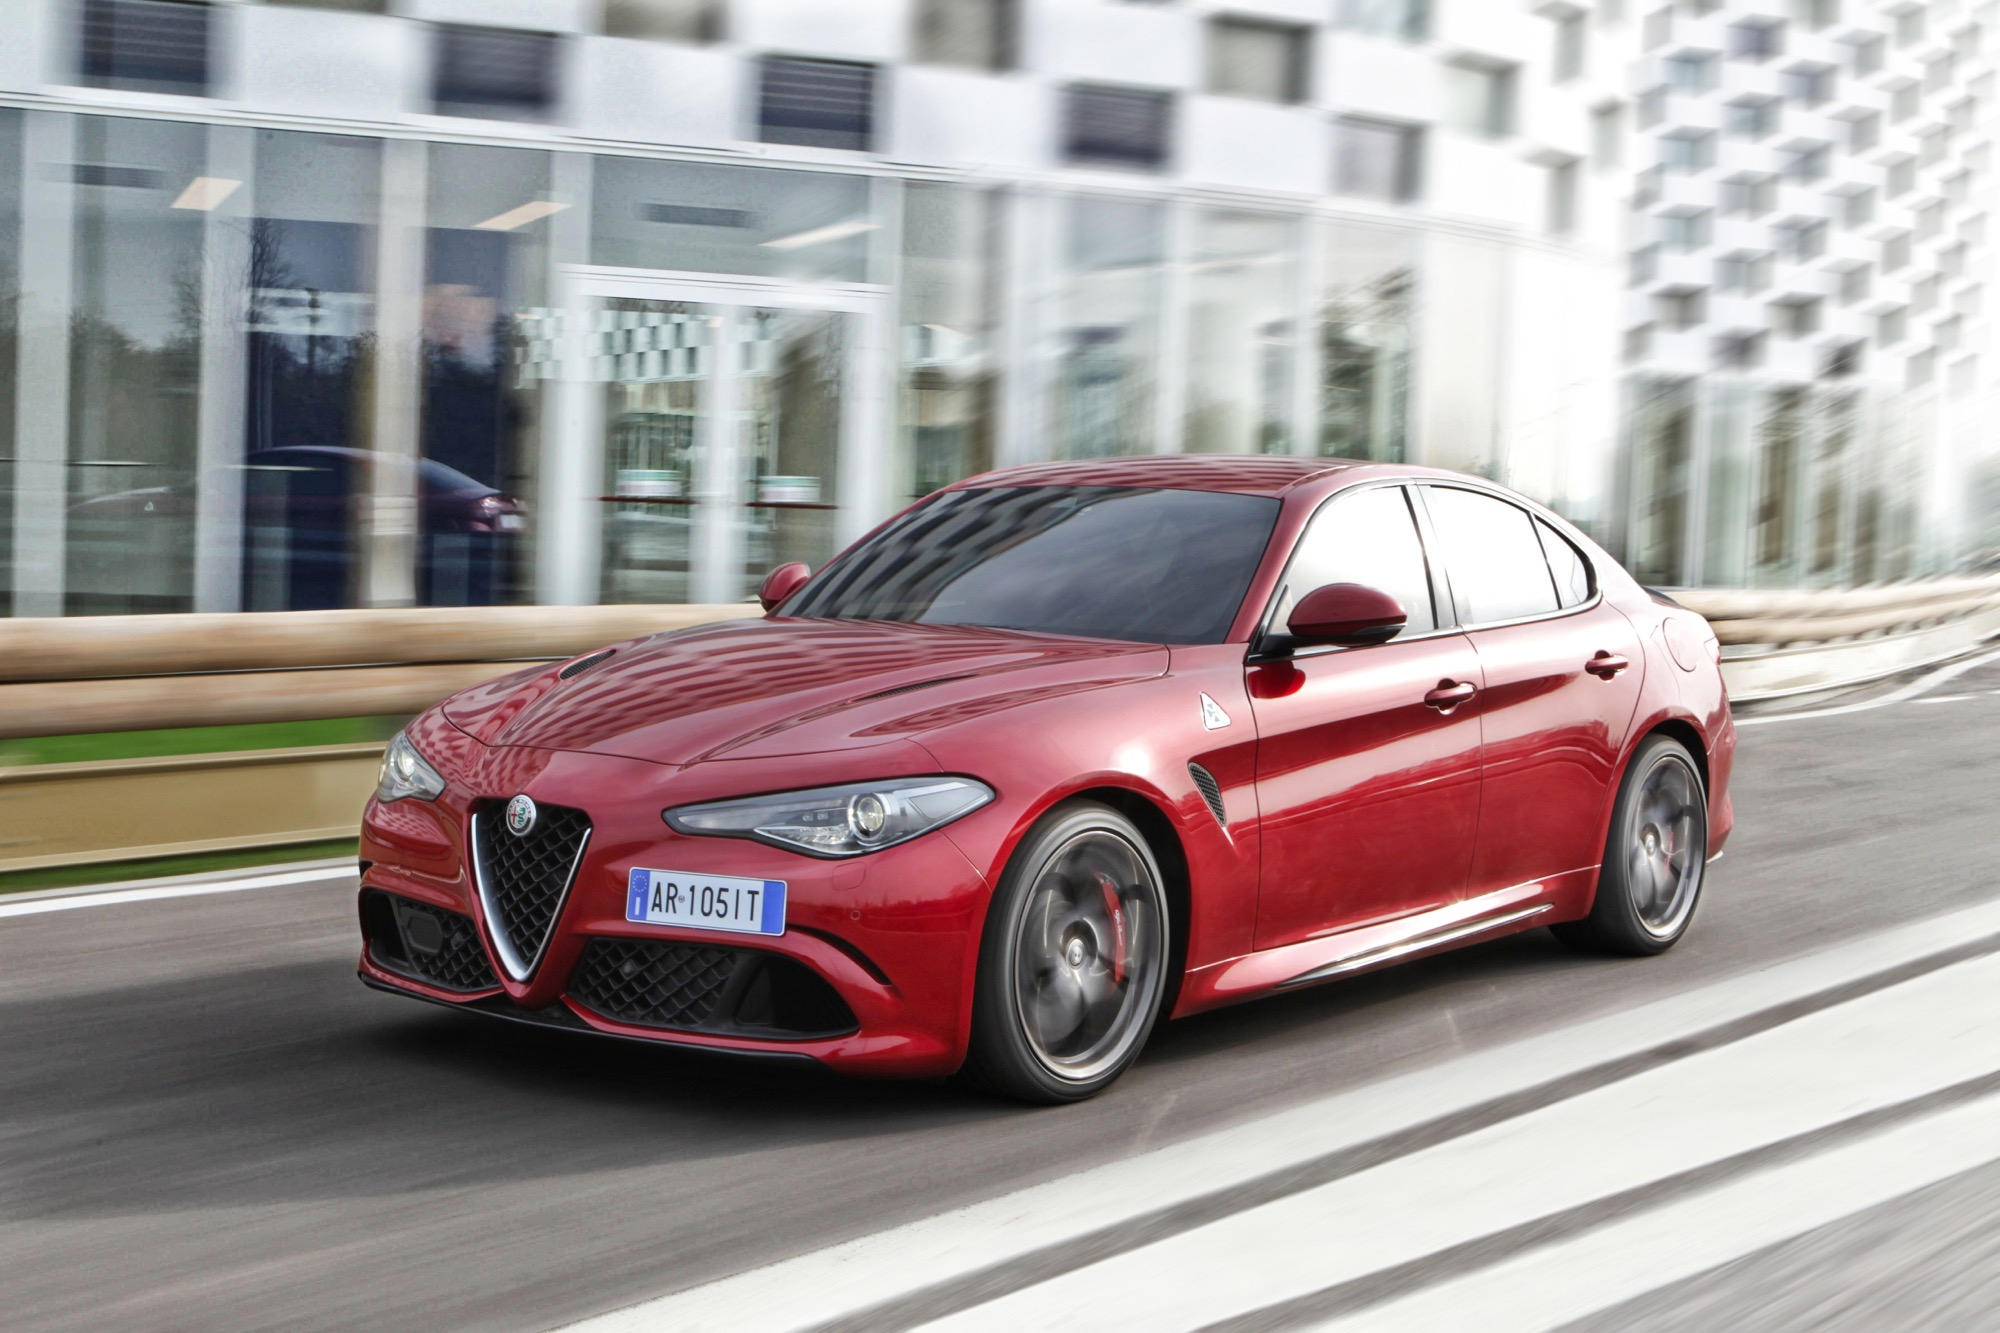 2016 Alfa Romeo Giulia Quadrifoglio Review - photos ...